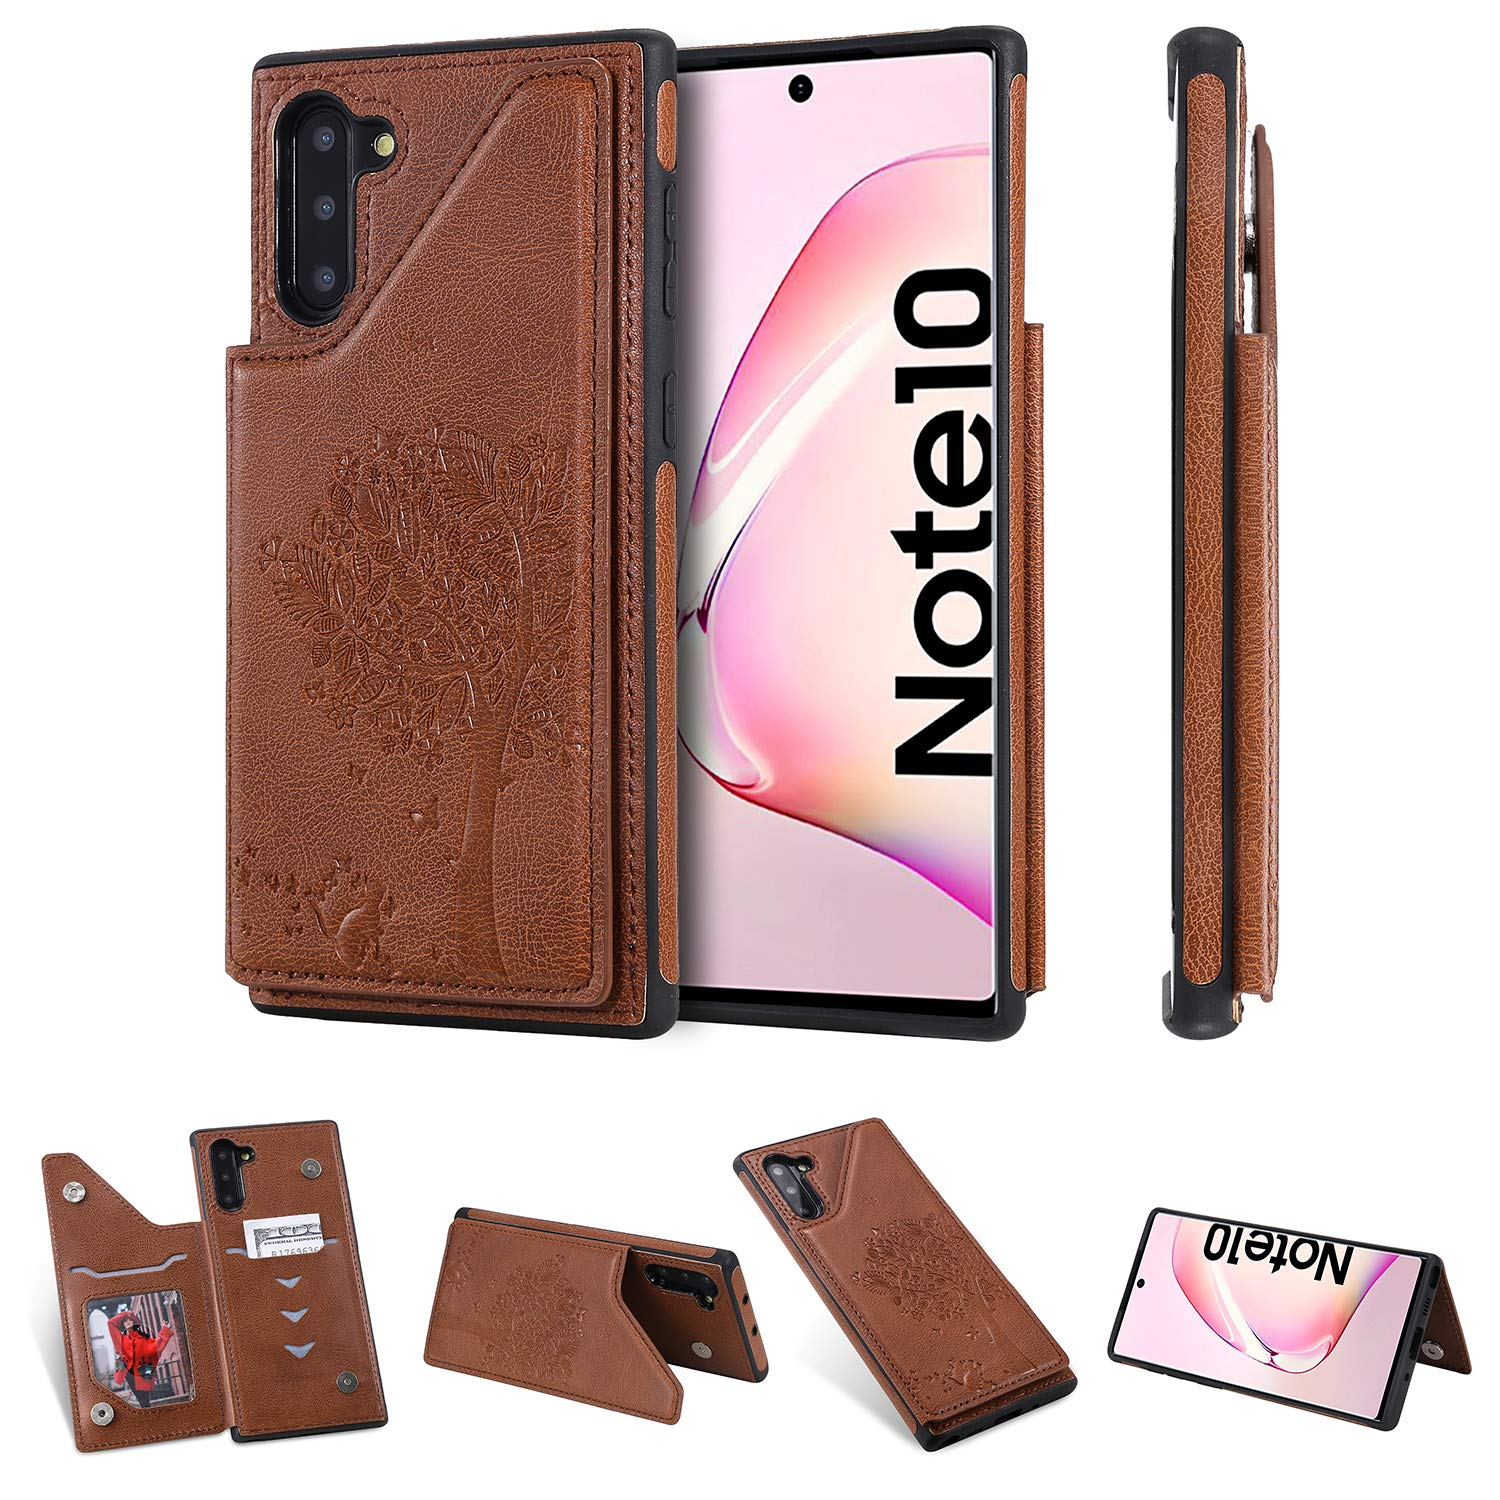 Tznzxm Galaxy Note 10 Case,Fashion Tree Cat Design PU Leather Kickstand Card Slots Double Magnetic Clasp Durable Shockproof Soft TPU Back Wallet Flip Cover for Samsung Galaxy Note 10 Brown by Tznzxm